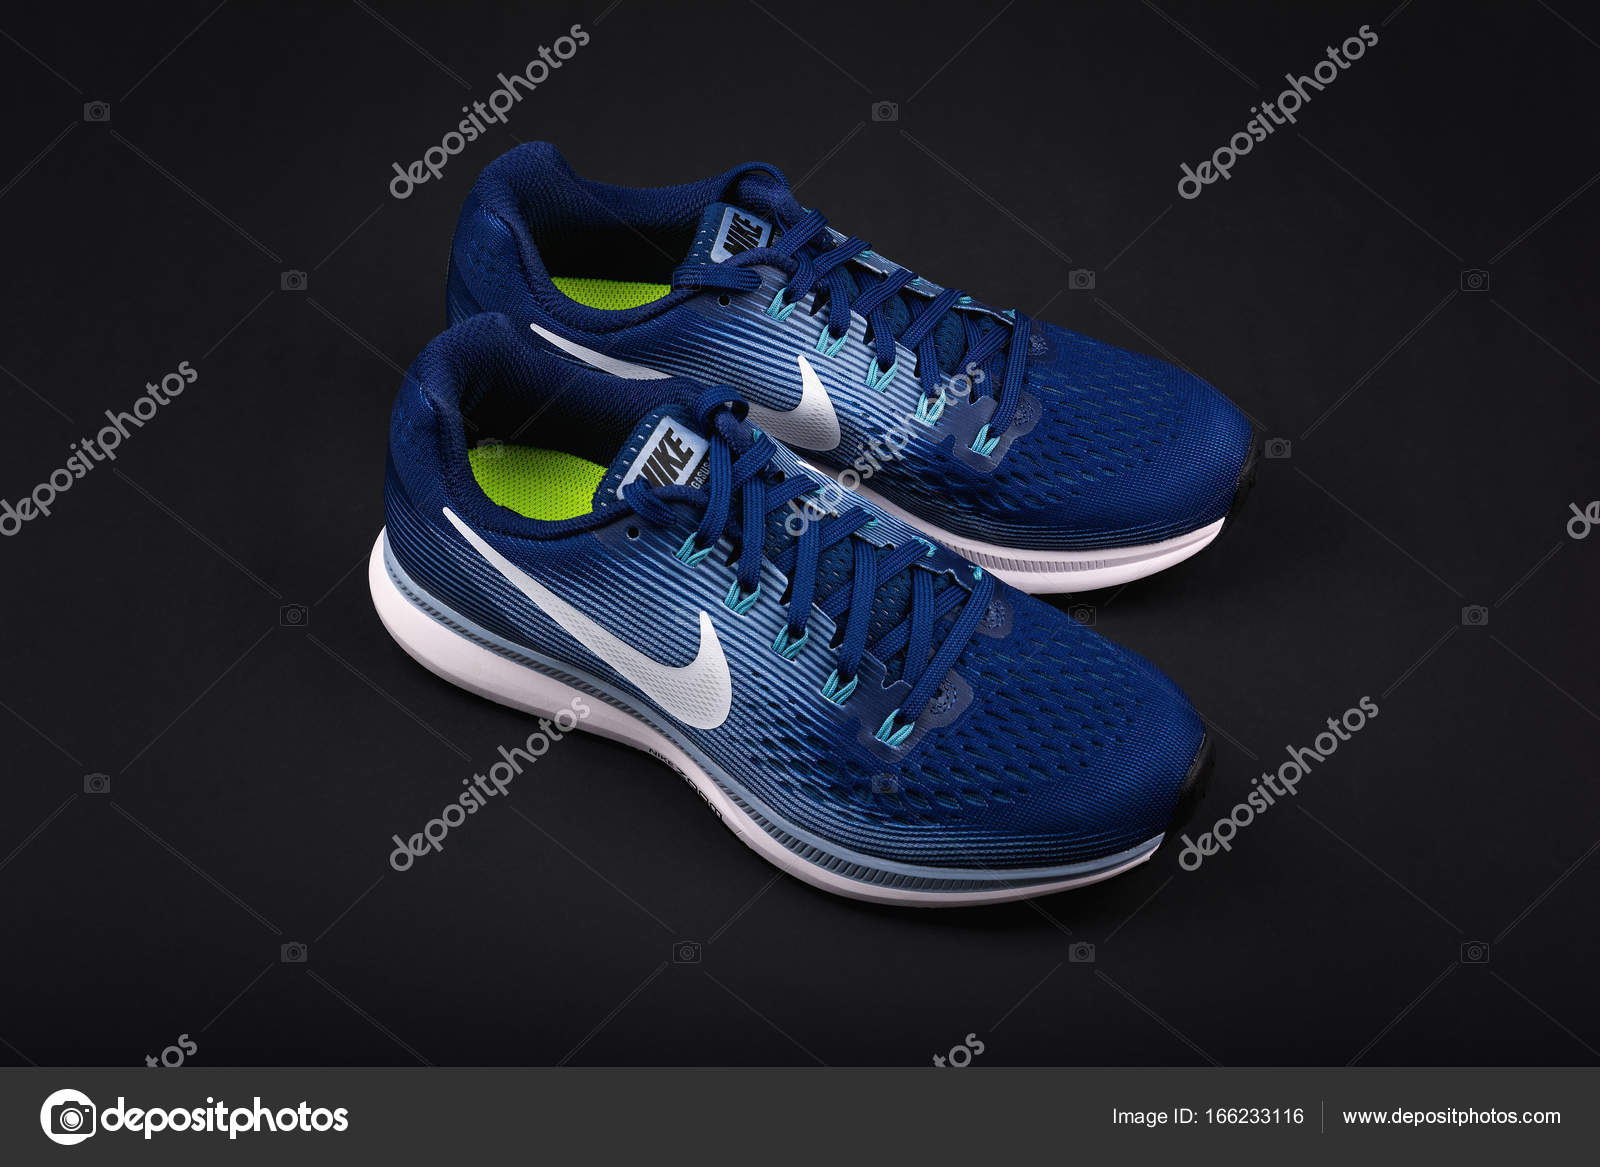 BURGAS, BULGARIA - SEPTEMBER 6, 2017: Nike Air Zoom Pegasus 34 Women's  Running Shoes in blue on black background. Nike is a global sports clothes  and ...